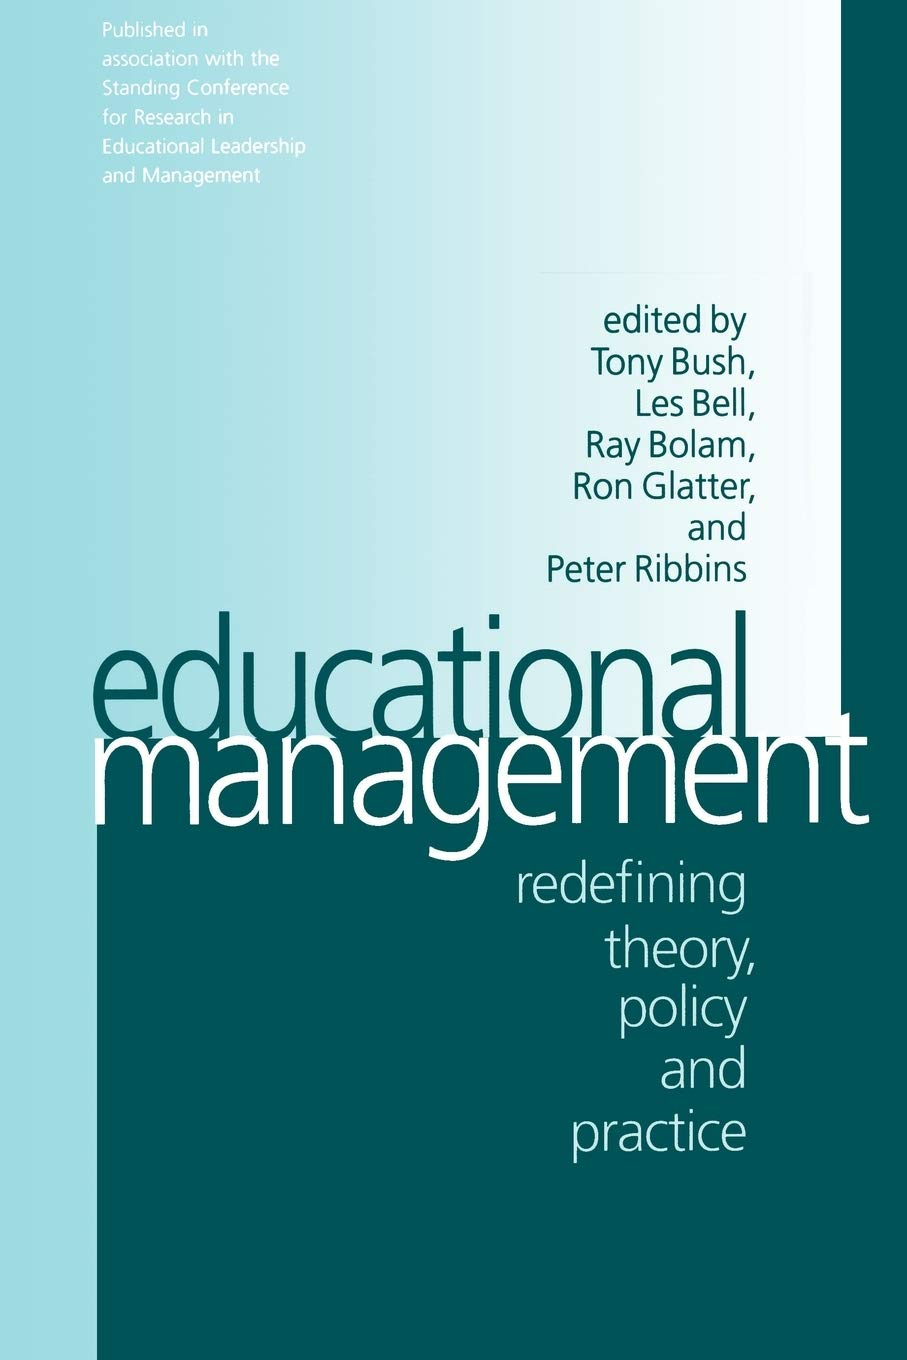 Educational Management: Redefining Theory, Policy and ...